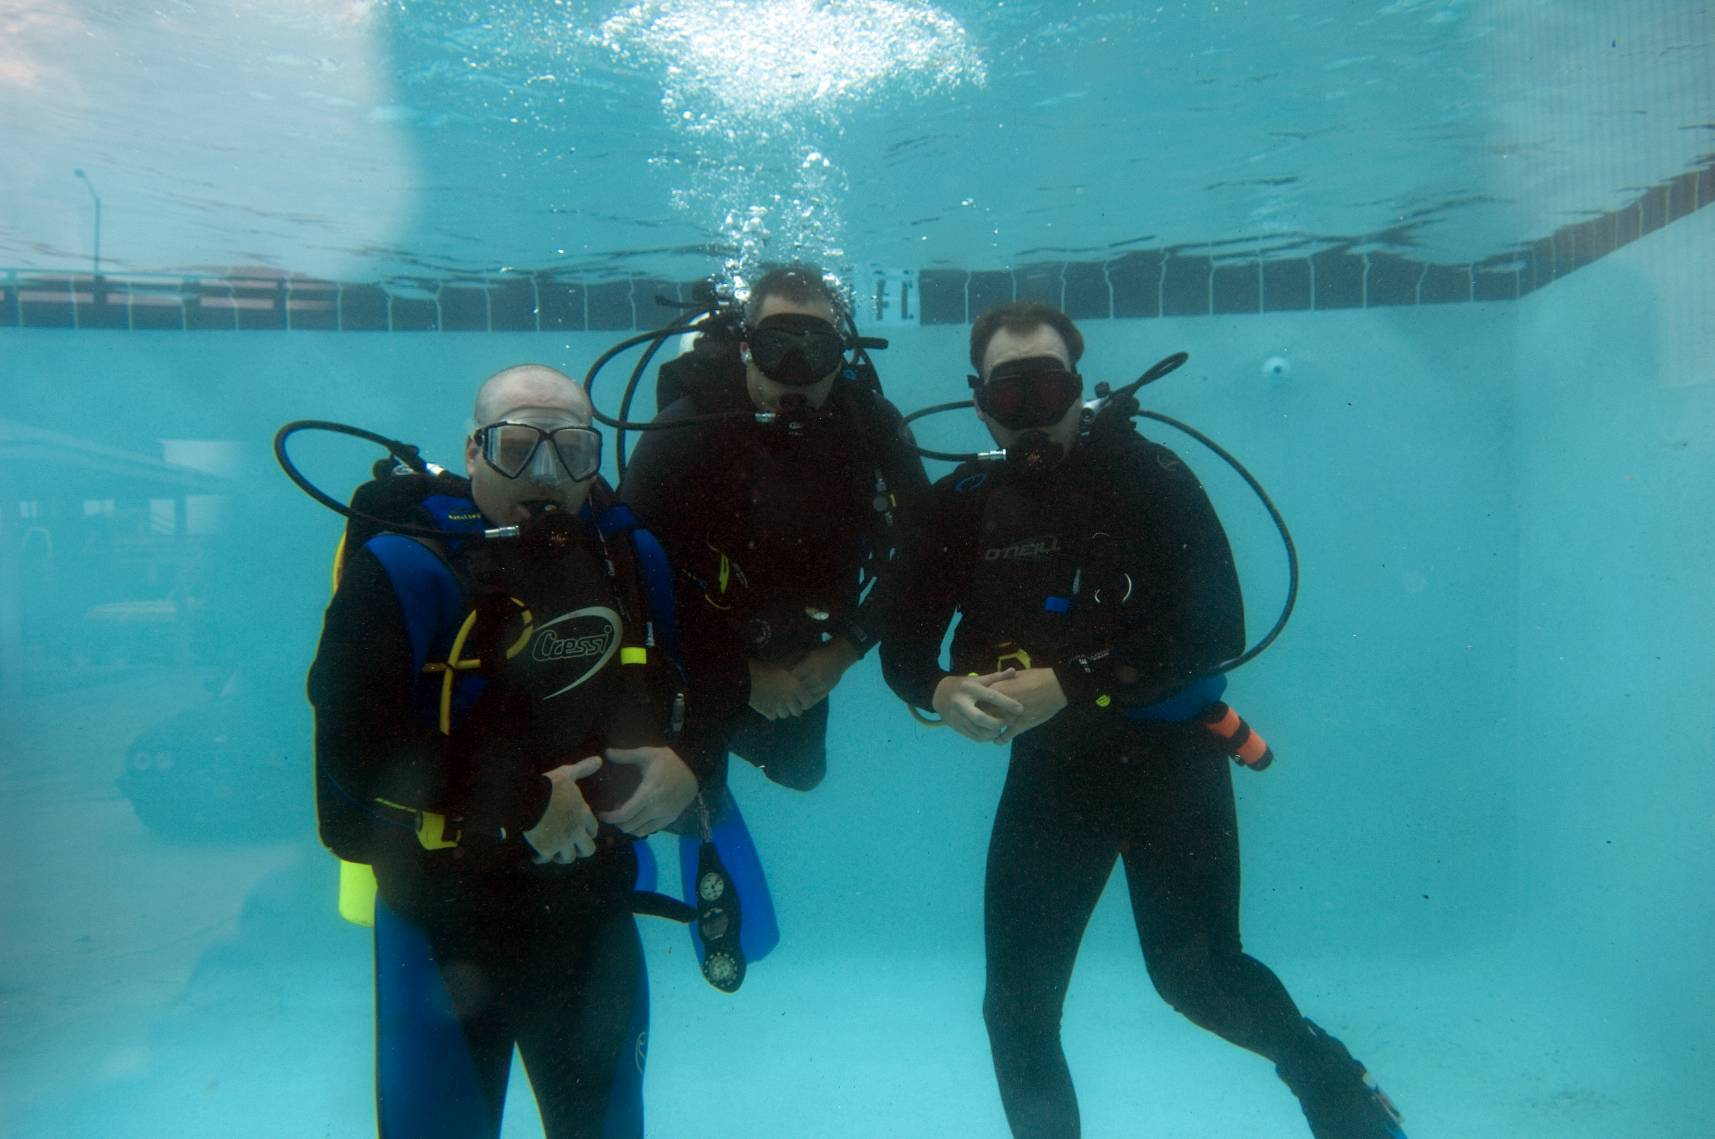 Sport diving instructor cda advanced training electives cda nase scuba training at cda technical institute xflitez Choice Image